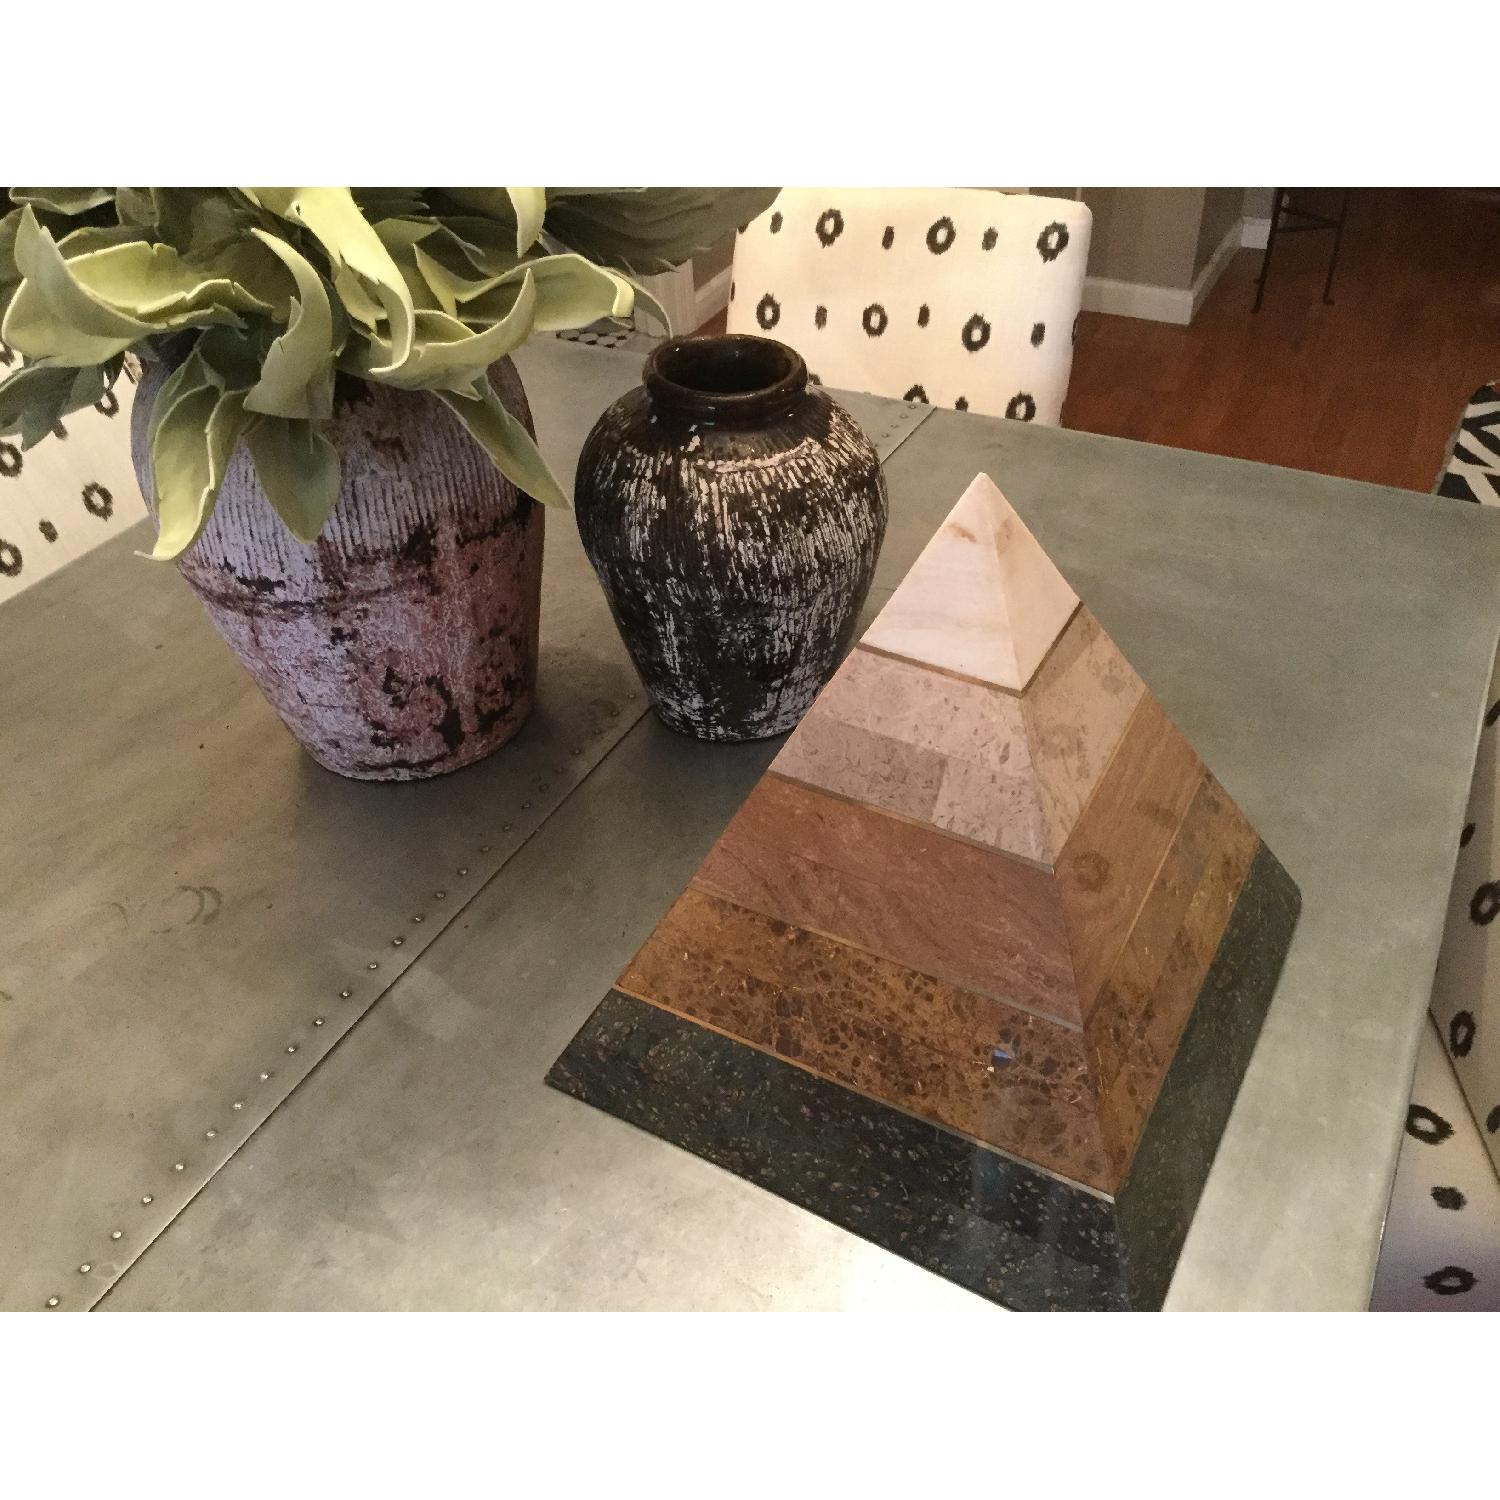 Kelly Wearstler Marble Pyramid-1